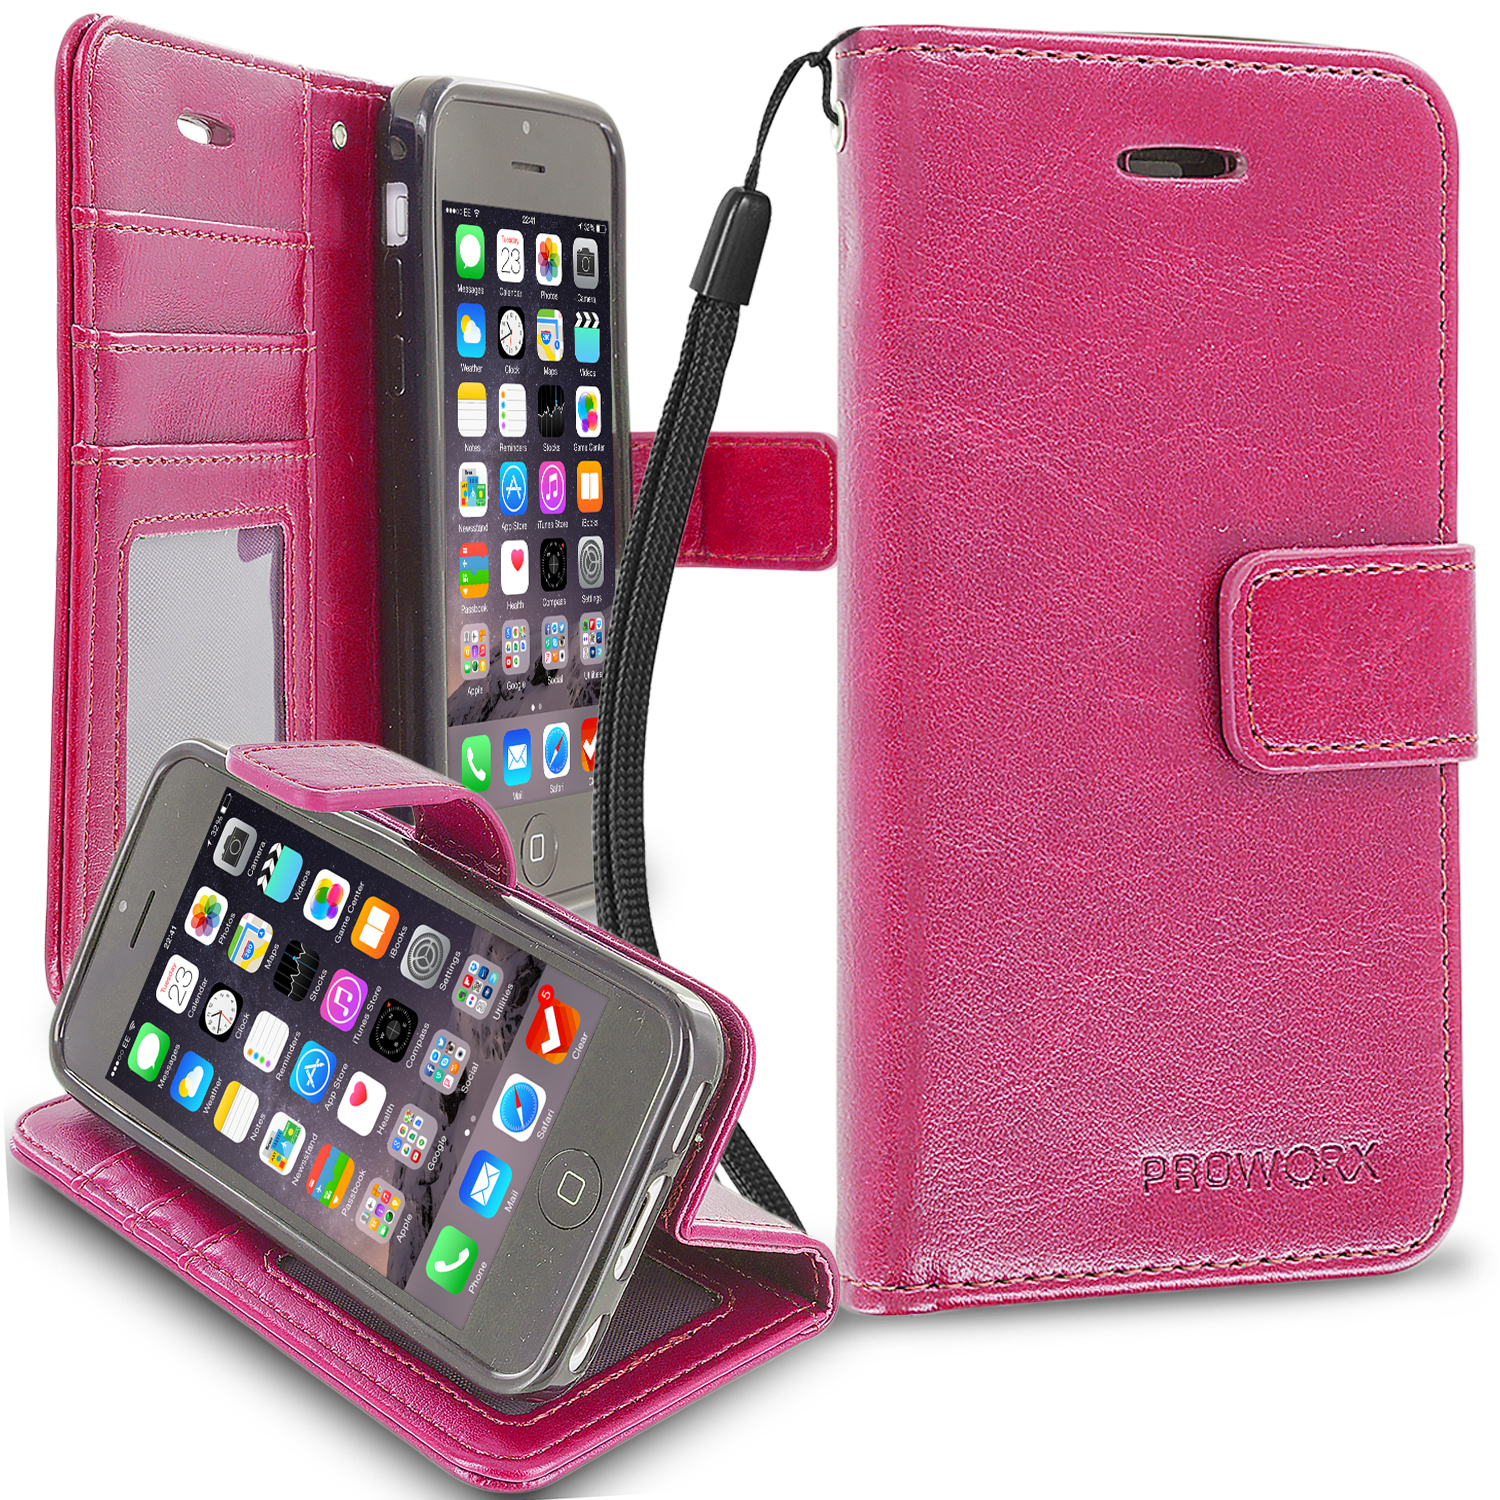 Apple iPhone 5C Hot Pink ProWorx Wallet Case Luxury PU Leather Case Cover With Card Slots & Stand